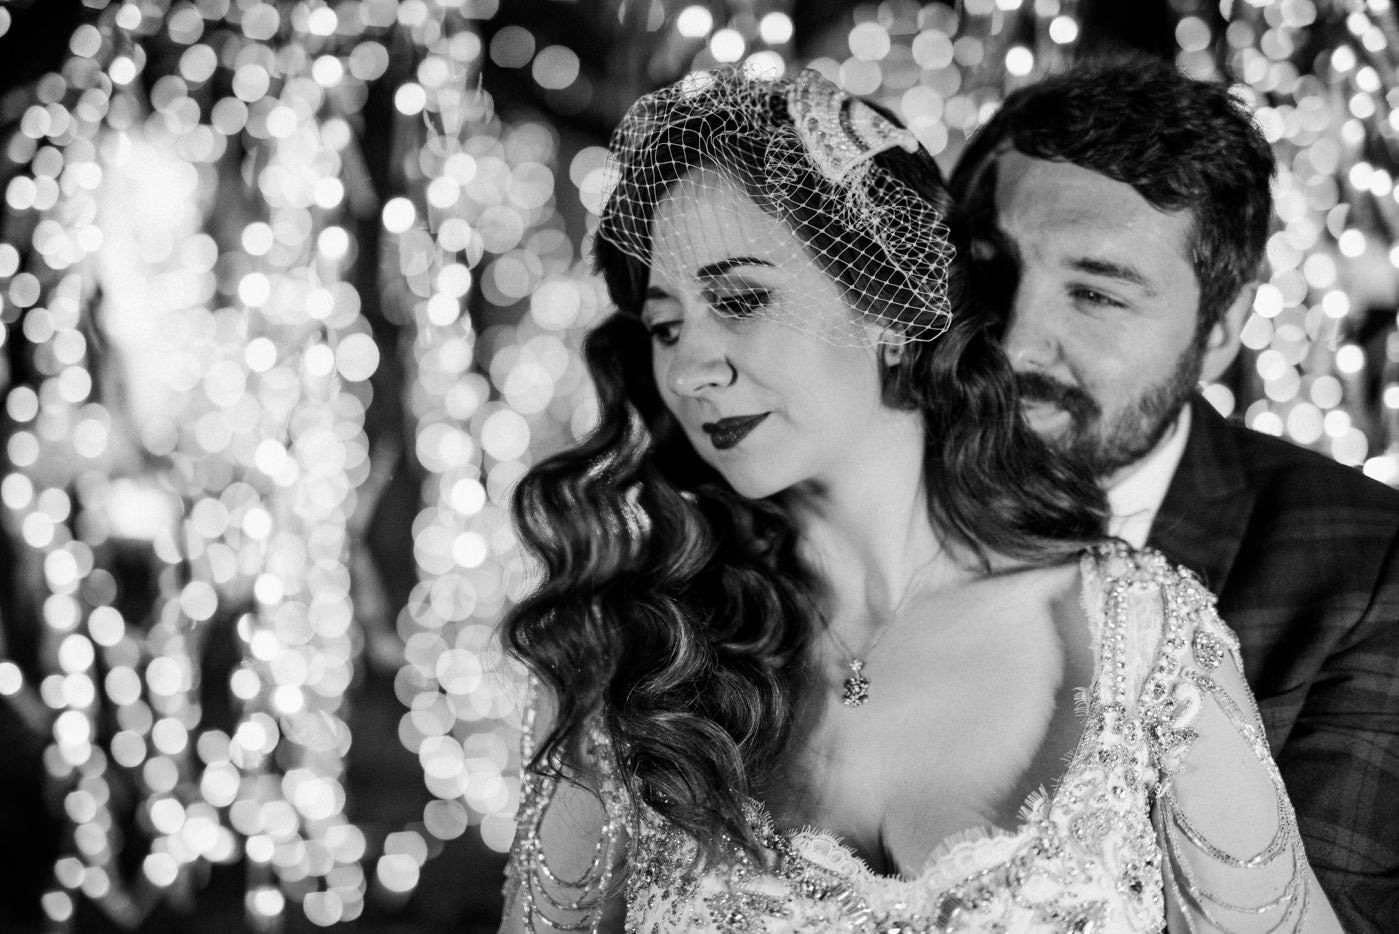 winter wedding photography black and white bride groom sparkling lights